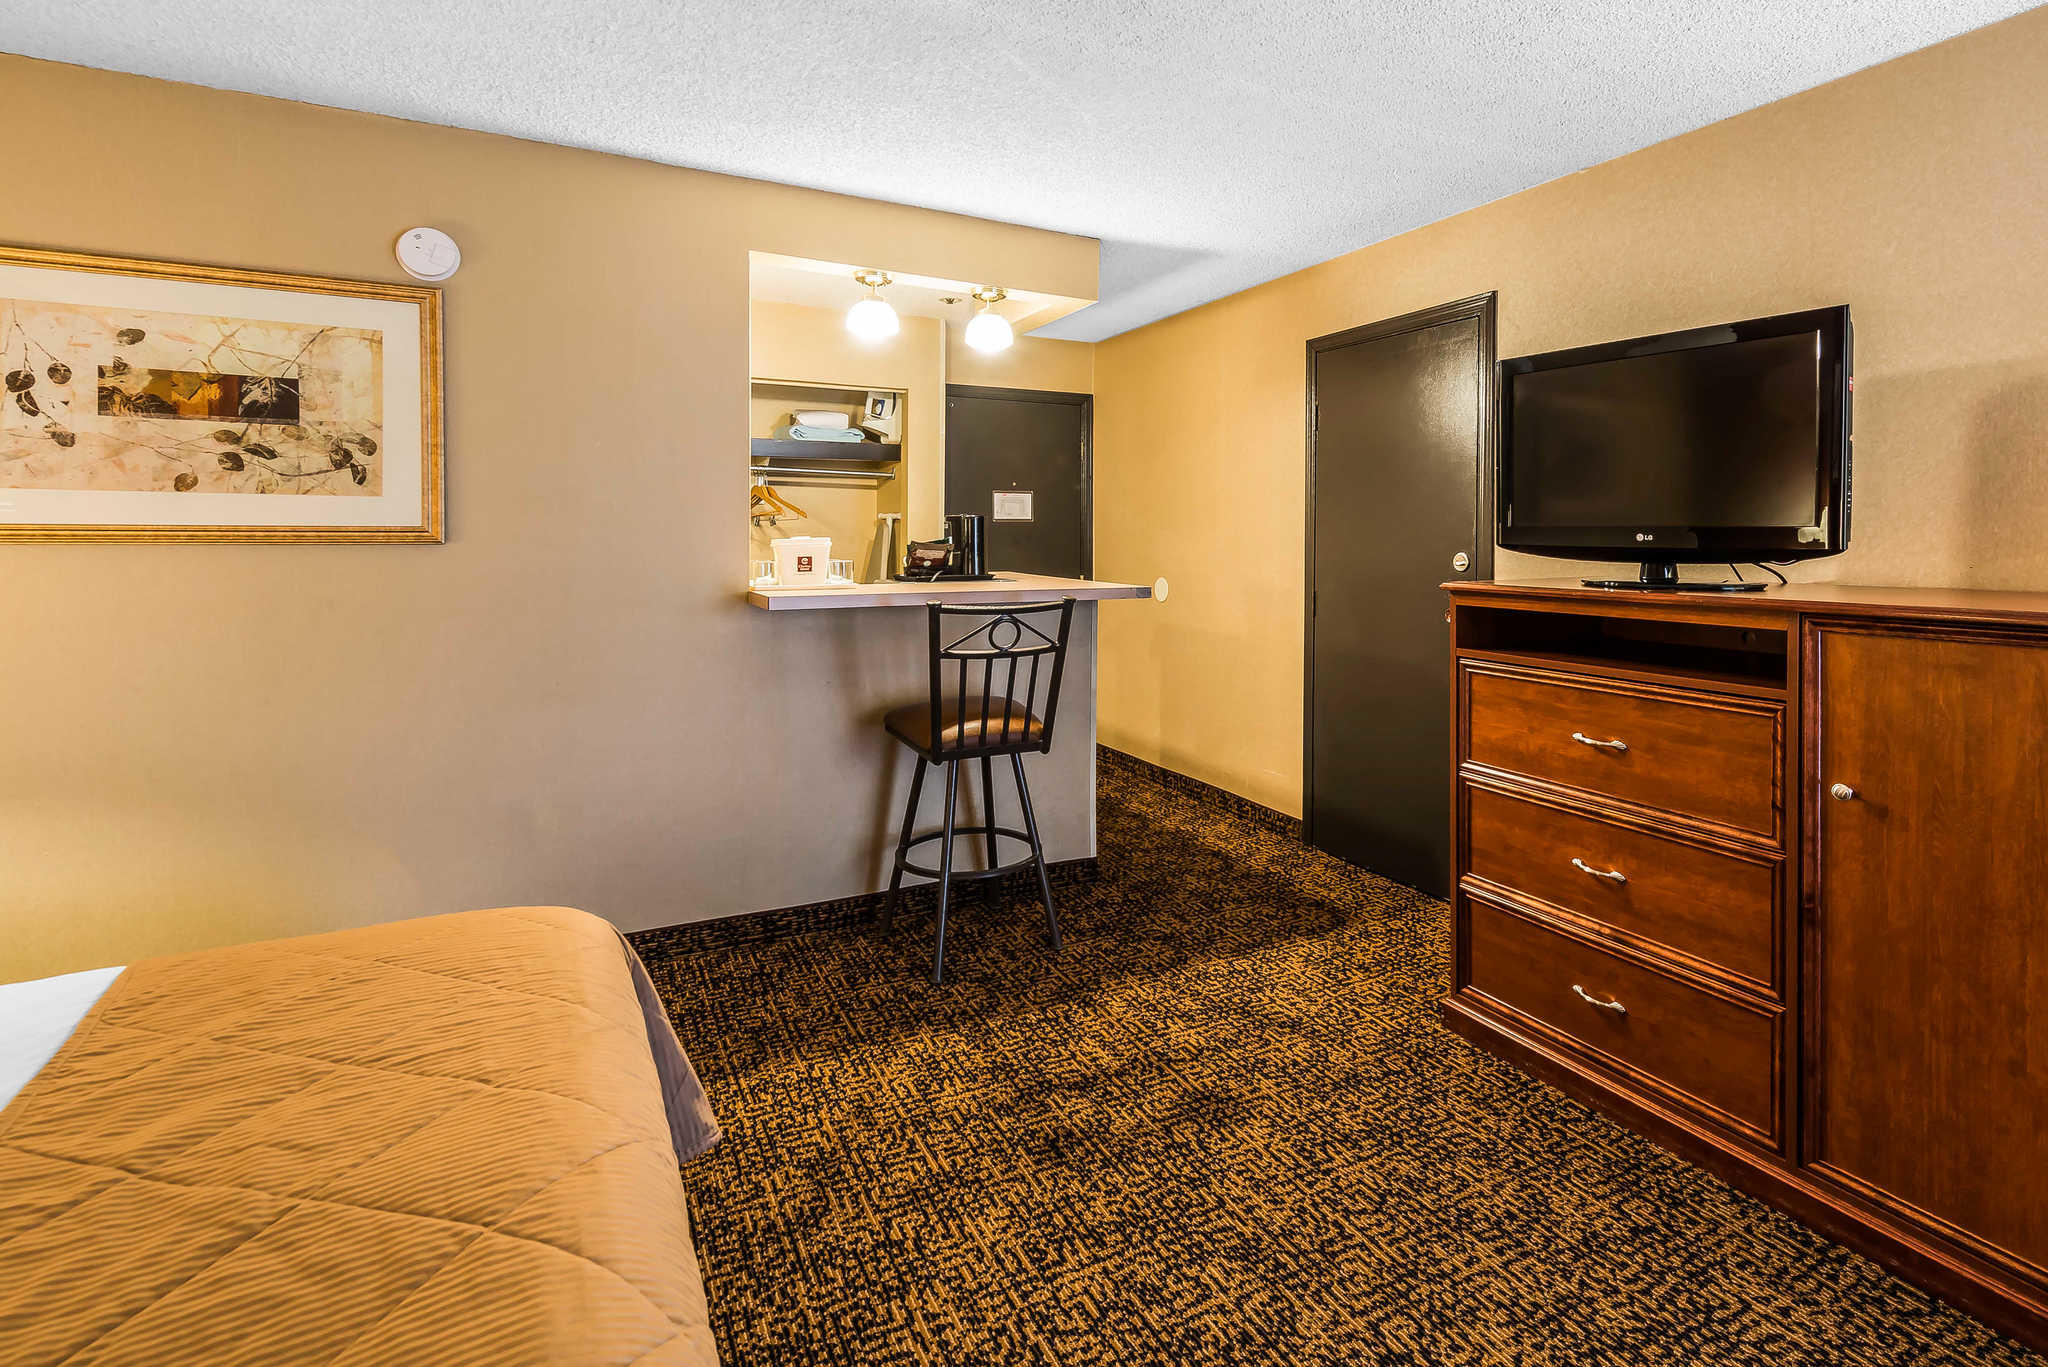 Conference Rooms For Rent Colorado Springs